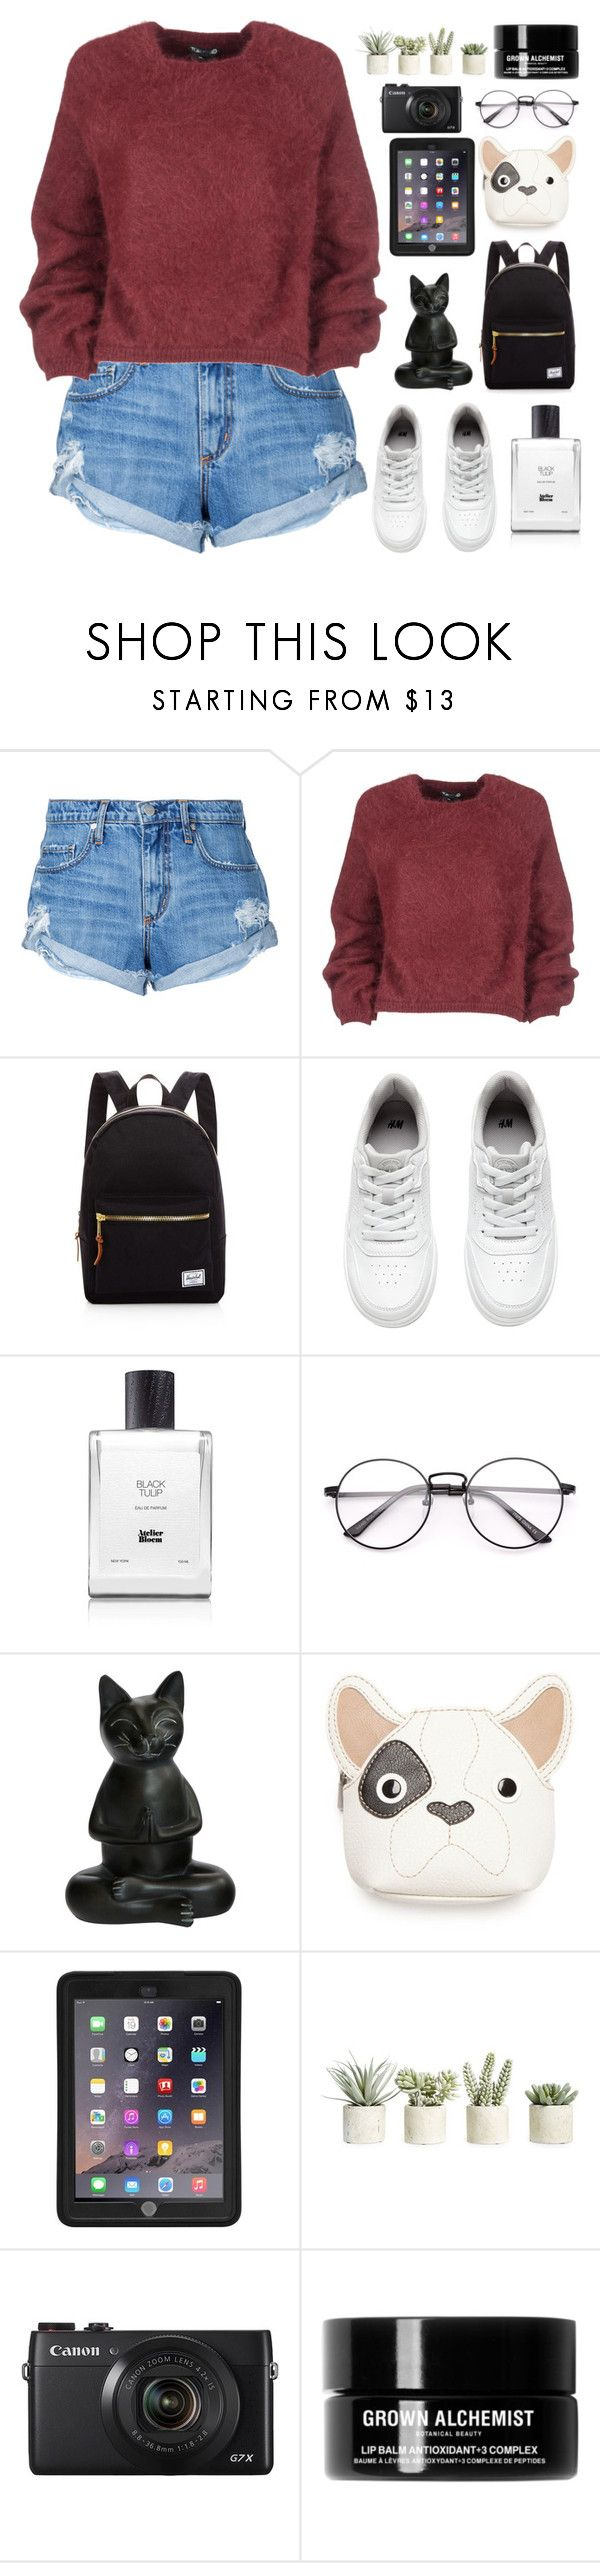 sweaters on by pure vnom liked on polyvore featuring nobody denim